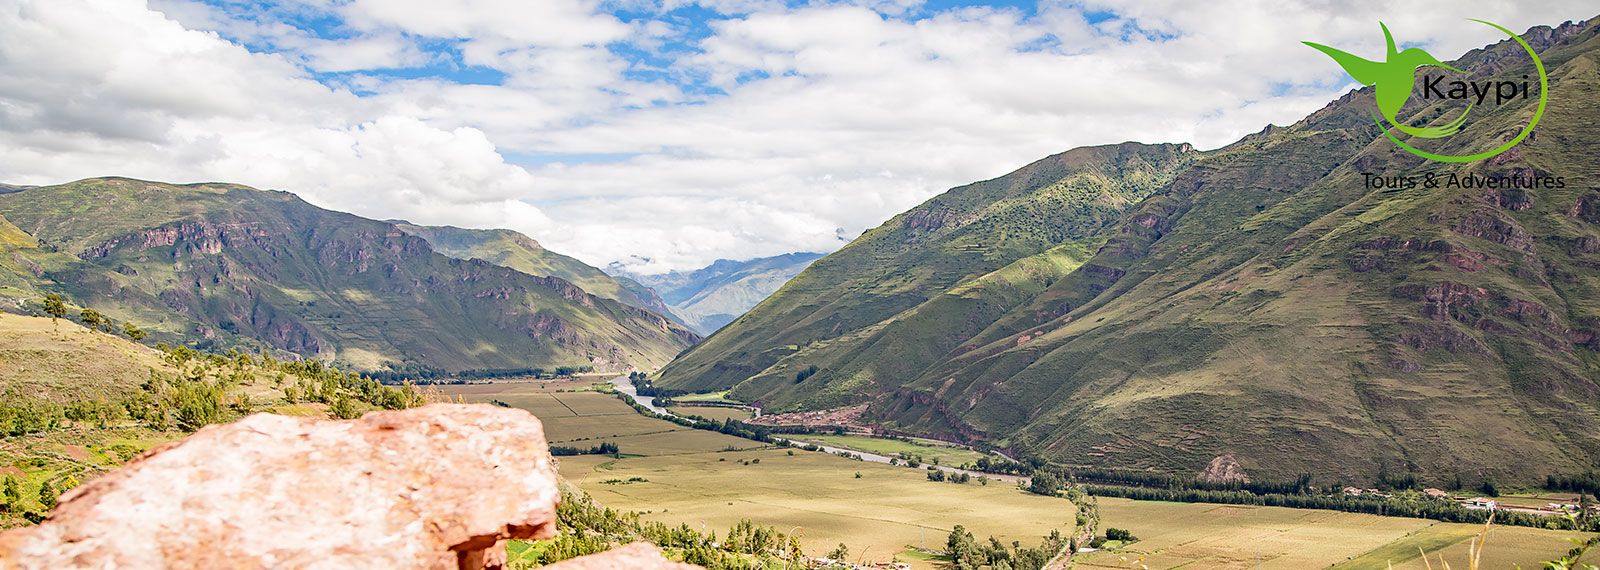 trip to Machu Picchu including sacred valley